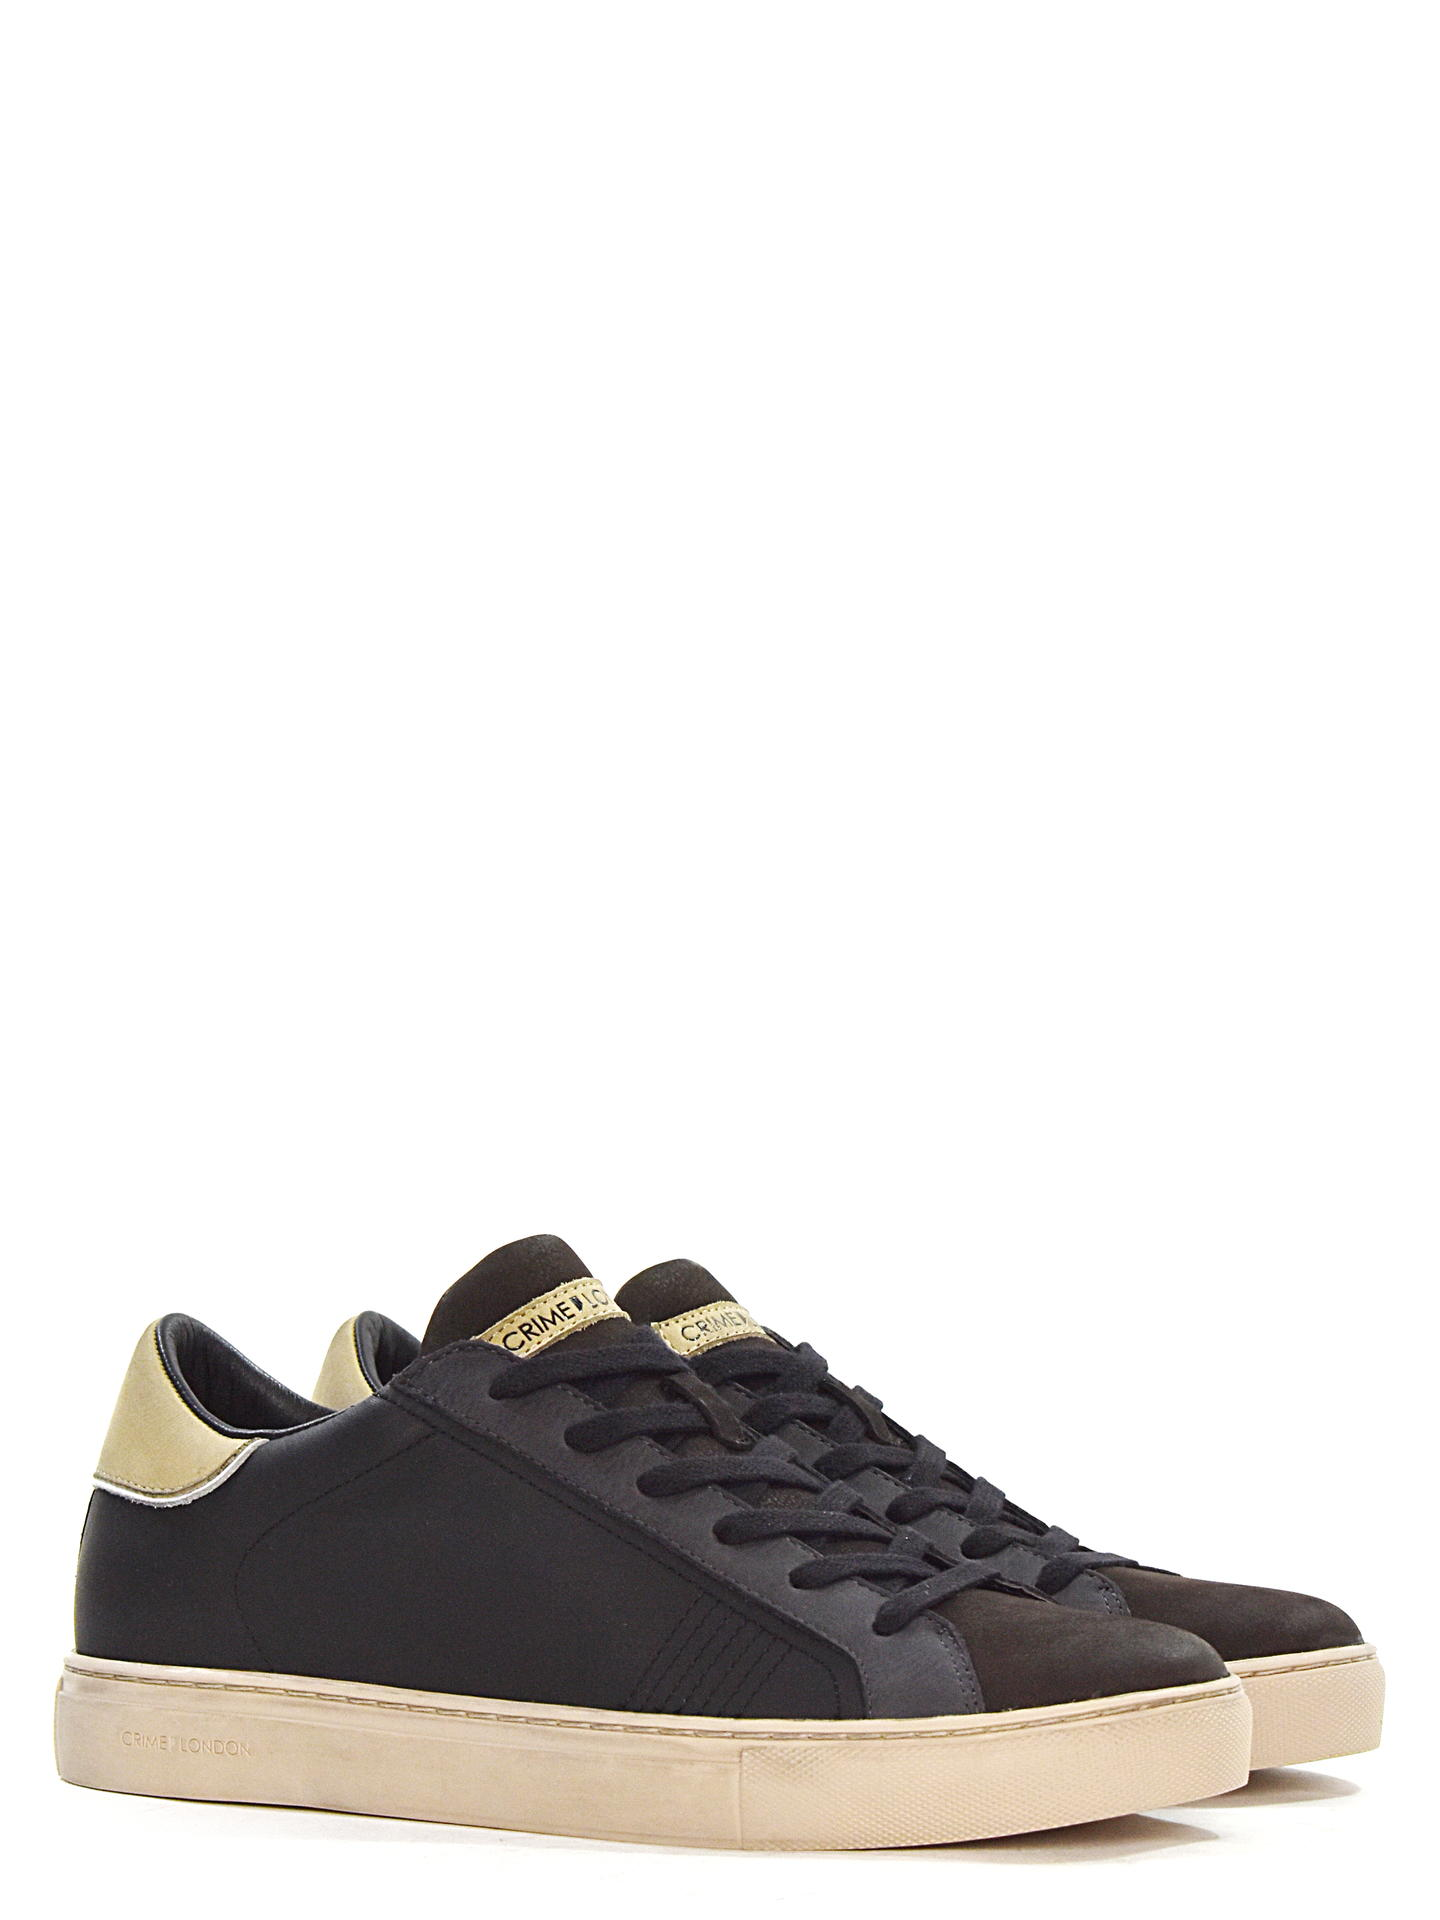 SNEAKERS CRIME LONDON 11605 NERO